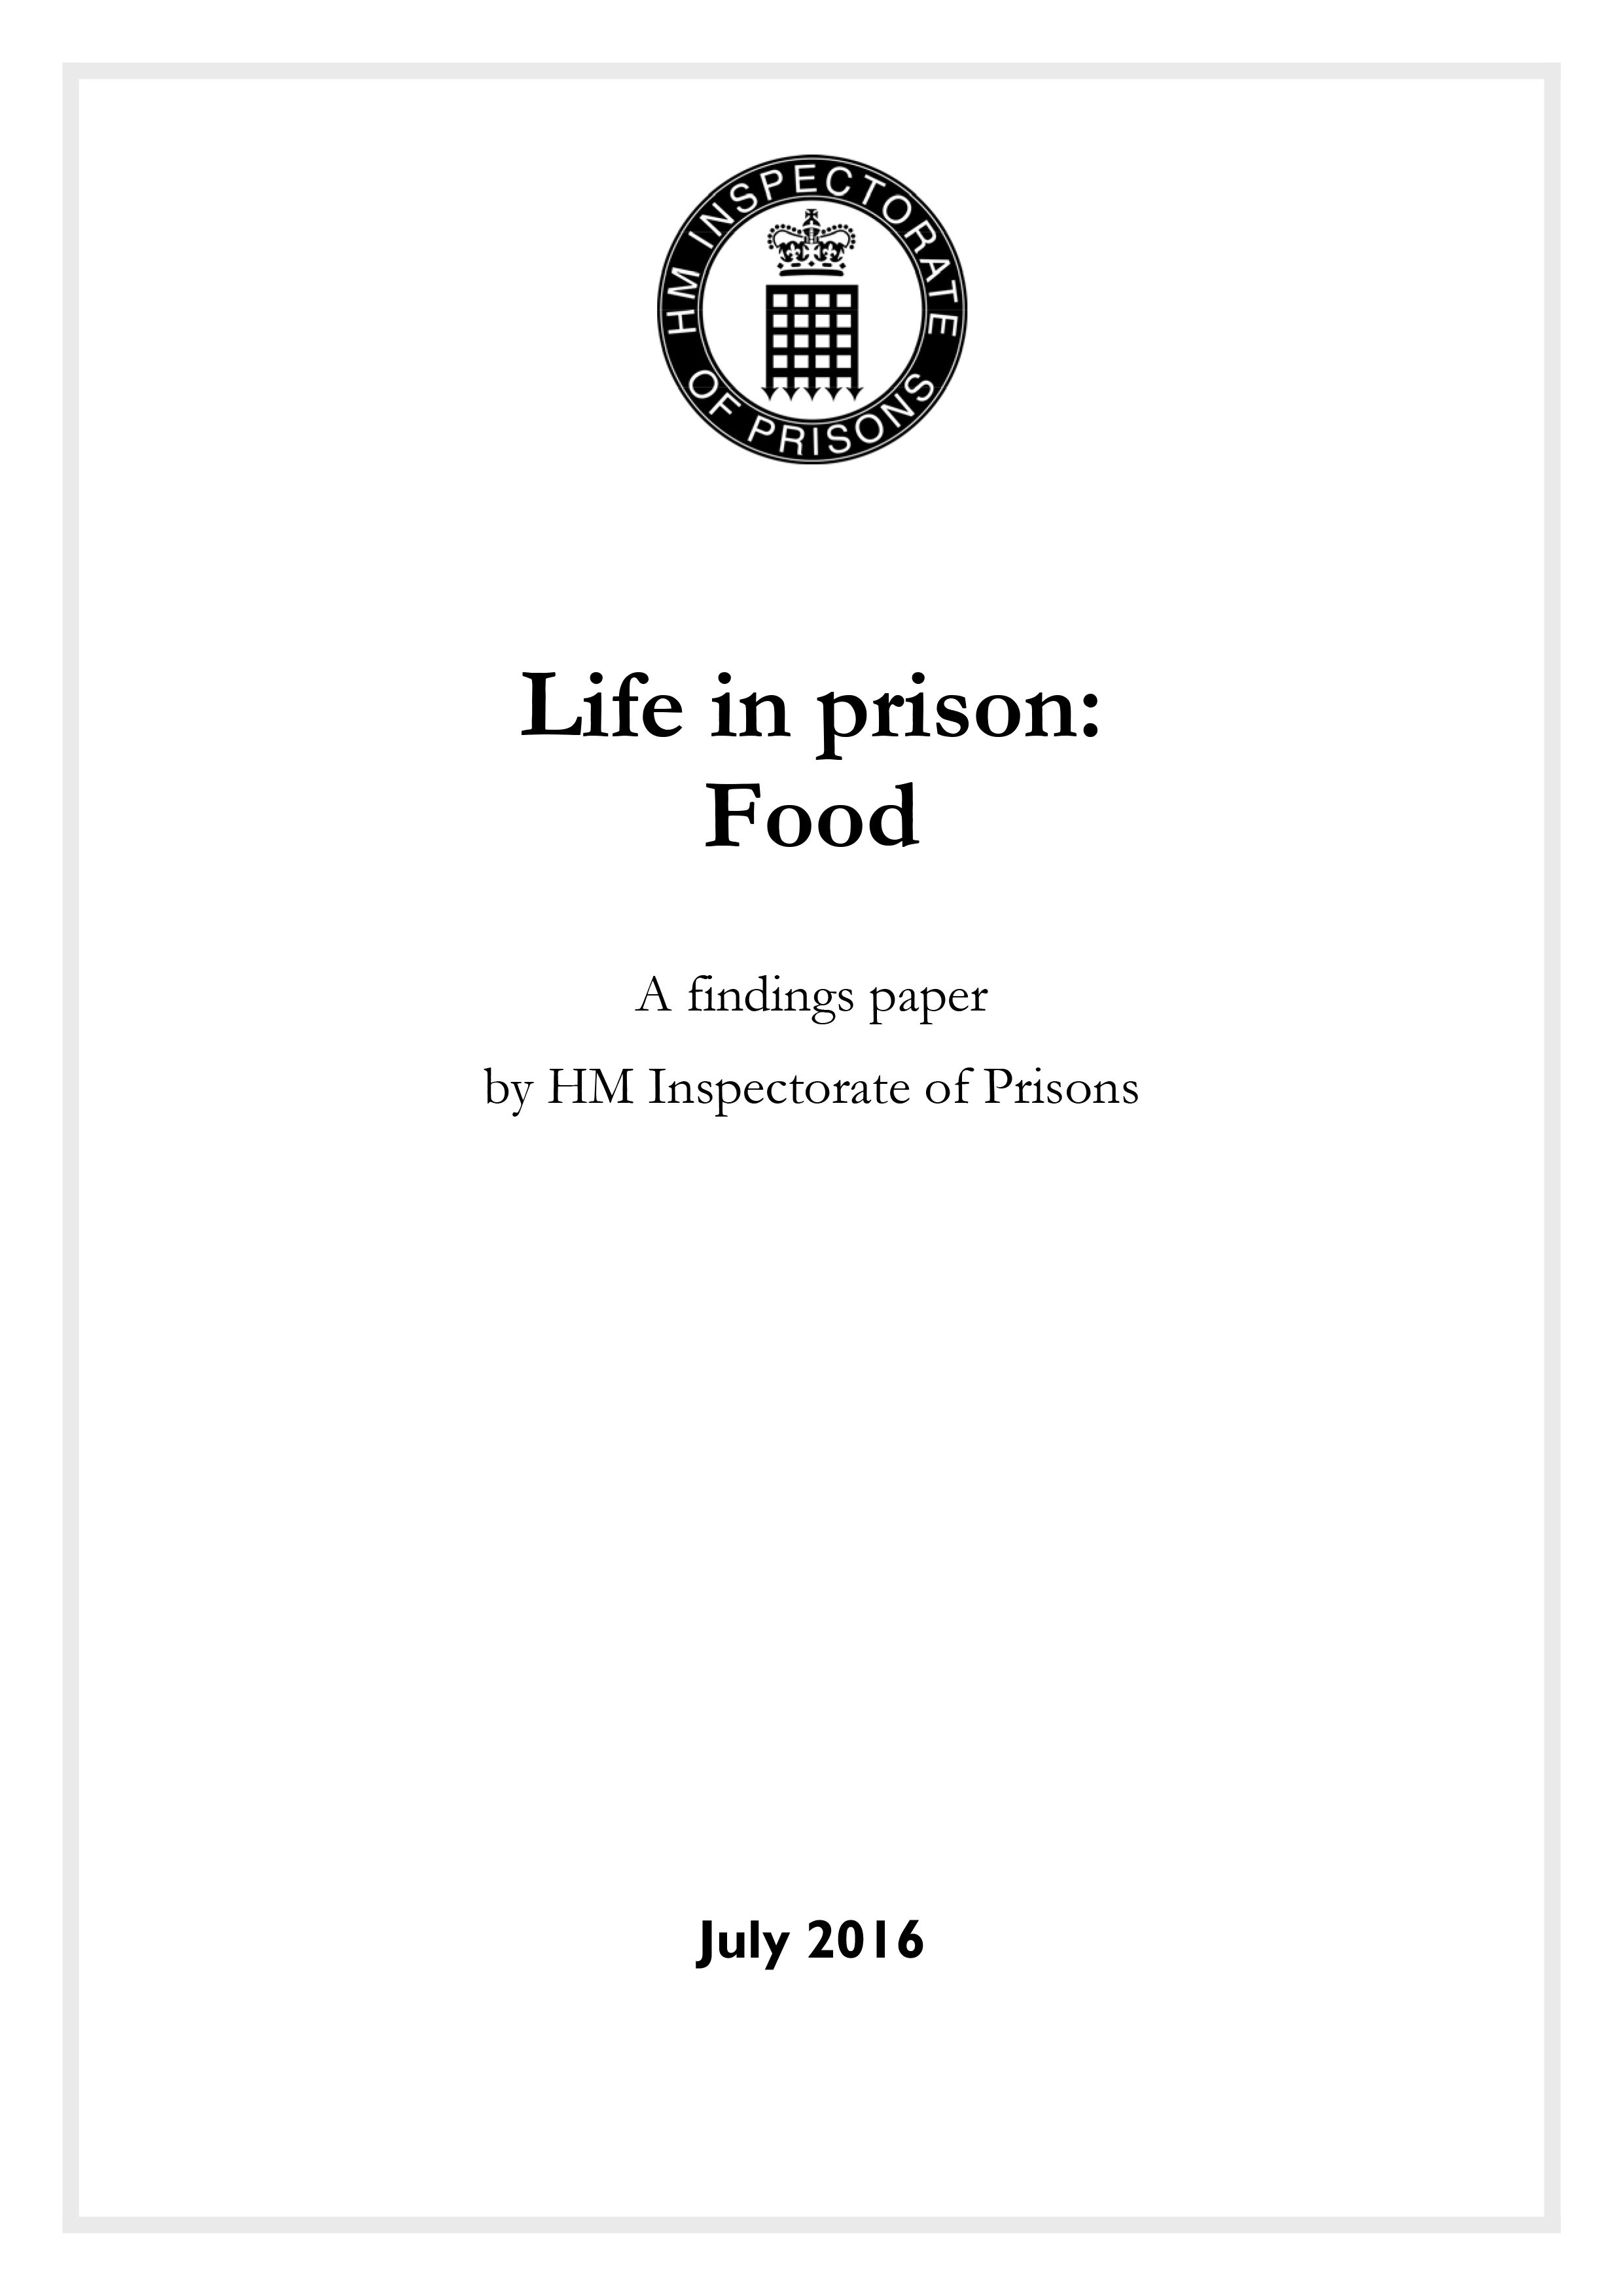 6. Life-in-prison-Food-Web-2016-1.jpg